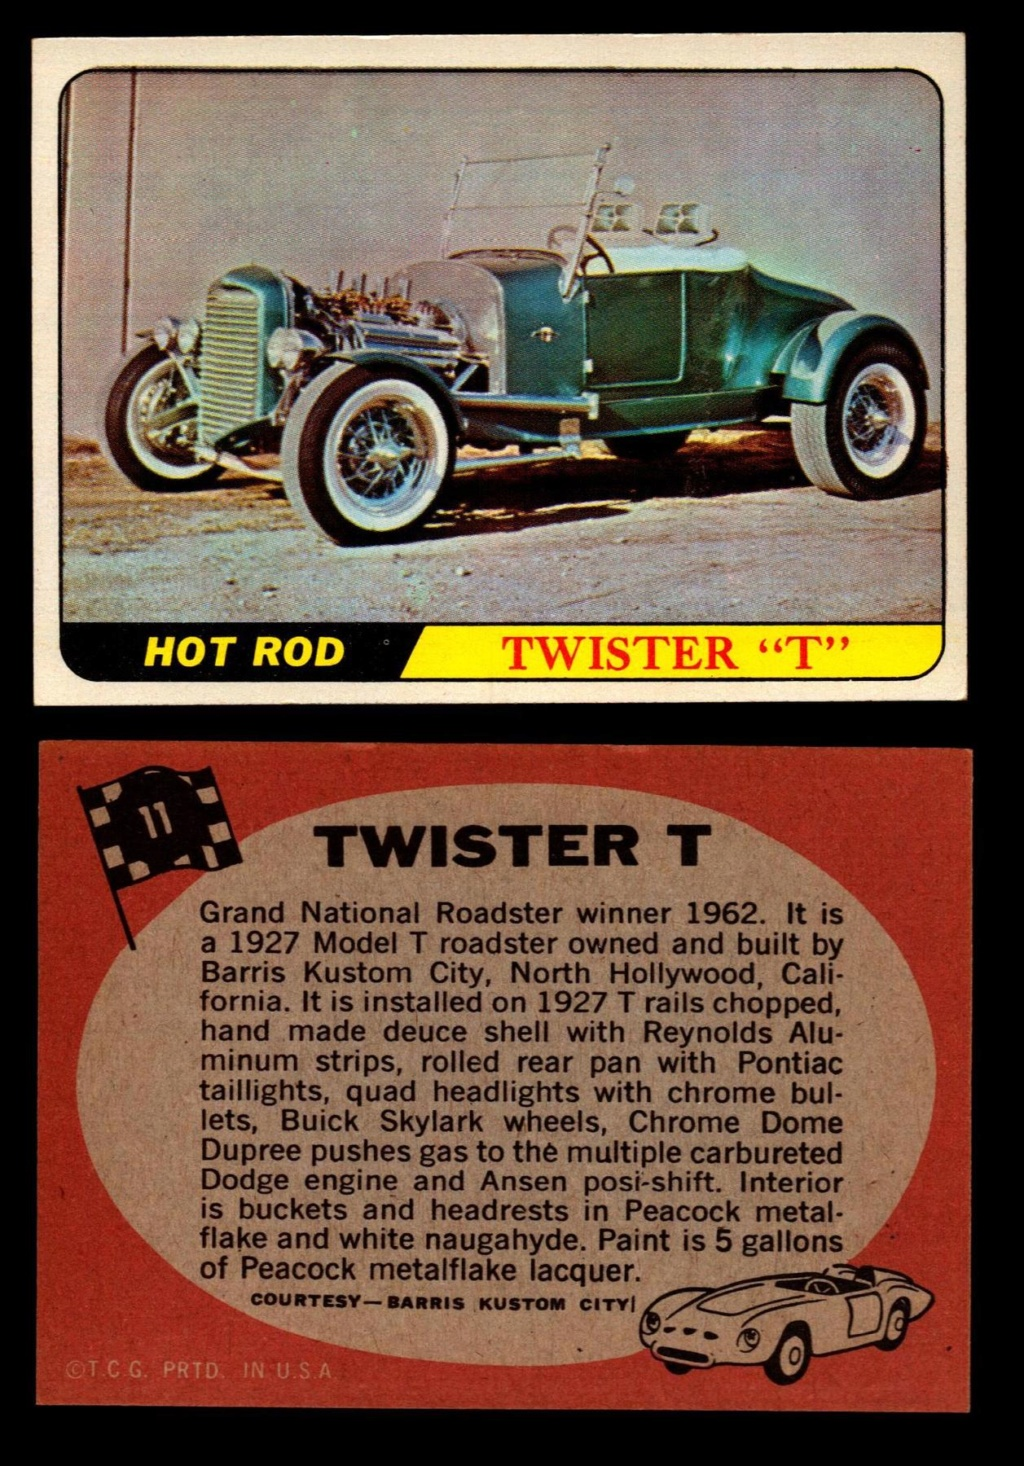 Hot Rods Topps - Vintage Trading Cards 1968 - Custom car - Dragster - Racer - Dream car - Barris Kustom City - Ed Roth Darrill Starbird, Gene Winfield, Bill Cuchenberry 11_40210